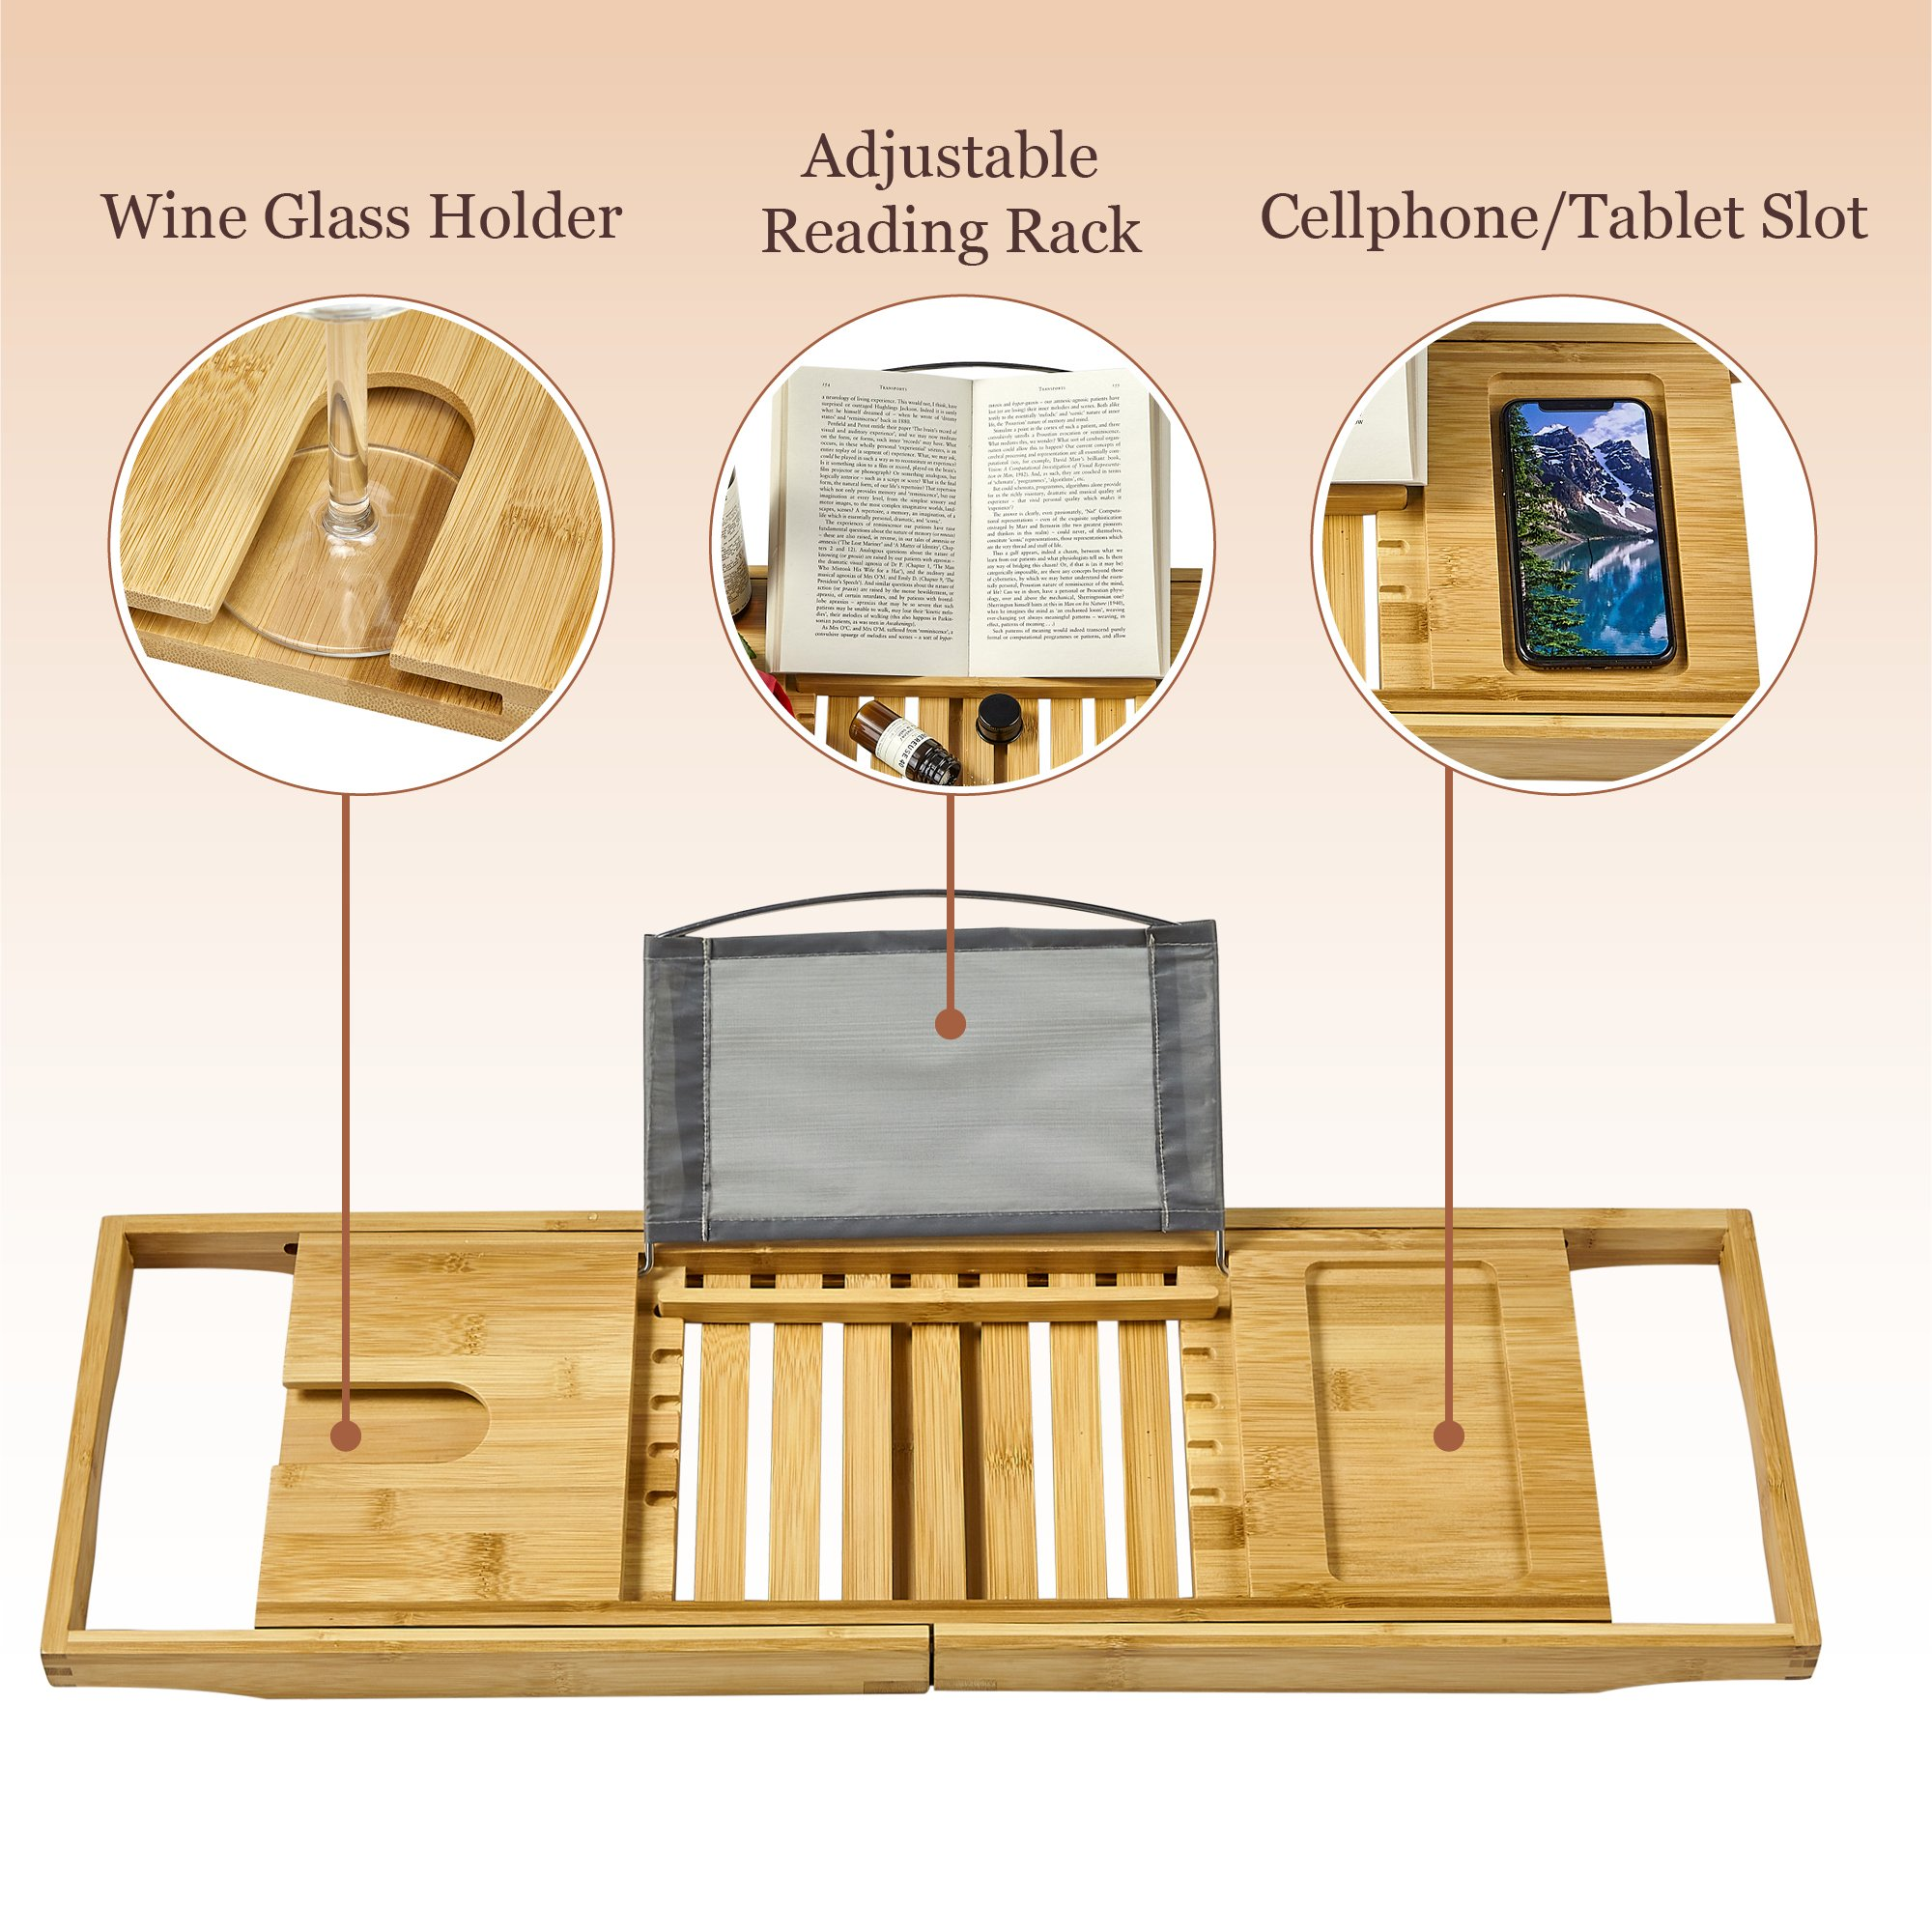 Tregini Luxury Bathtub Caddy - Extendable Bamboo Wood Bath Tray with Adjustable Book, iPad or Kindle Reading Rack - Wine Glass Holder - Cellphone or Tablet Slot by Tregini (Image #2)